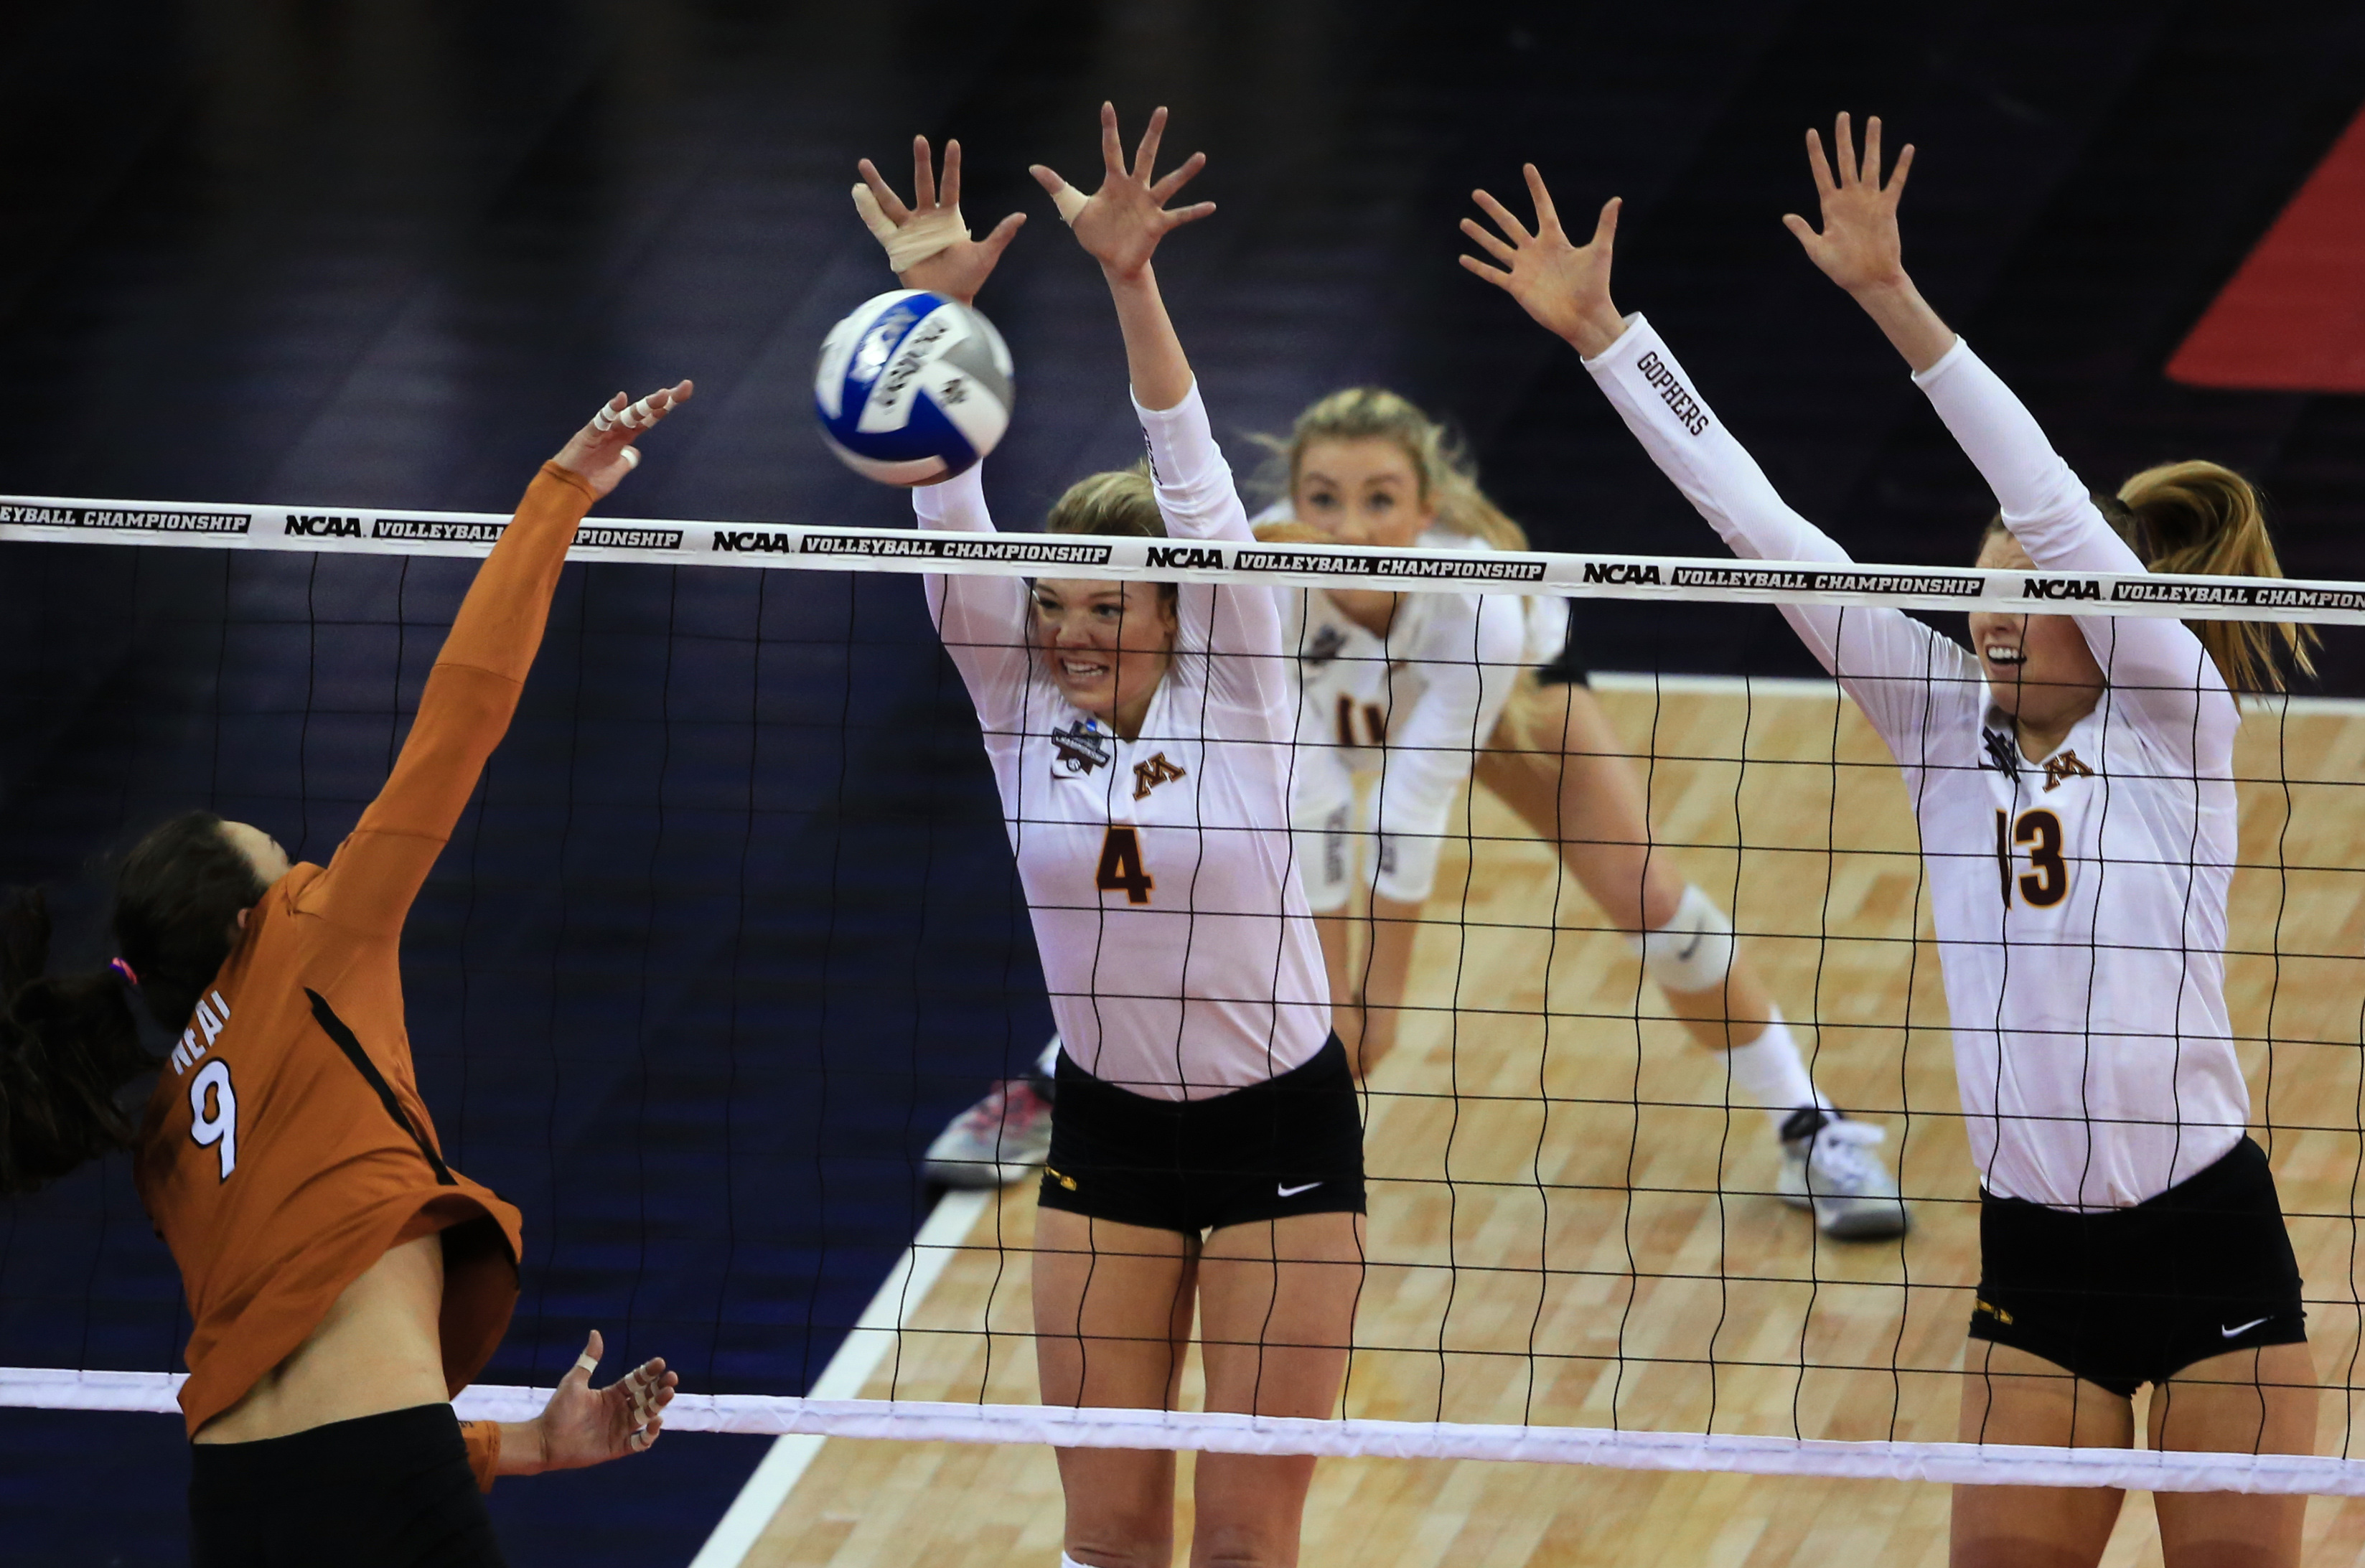 Texas' Amy Neal (9) h8ts a kill against Minnesota's Paige Tapp (4) and Molly Lohman (13) during an NCAA women's volleyball tournament semifinal in Omaha, Neb., Thursday, Dec. 17, 2015. (AP Photo/Nati Harnik)